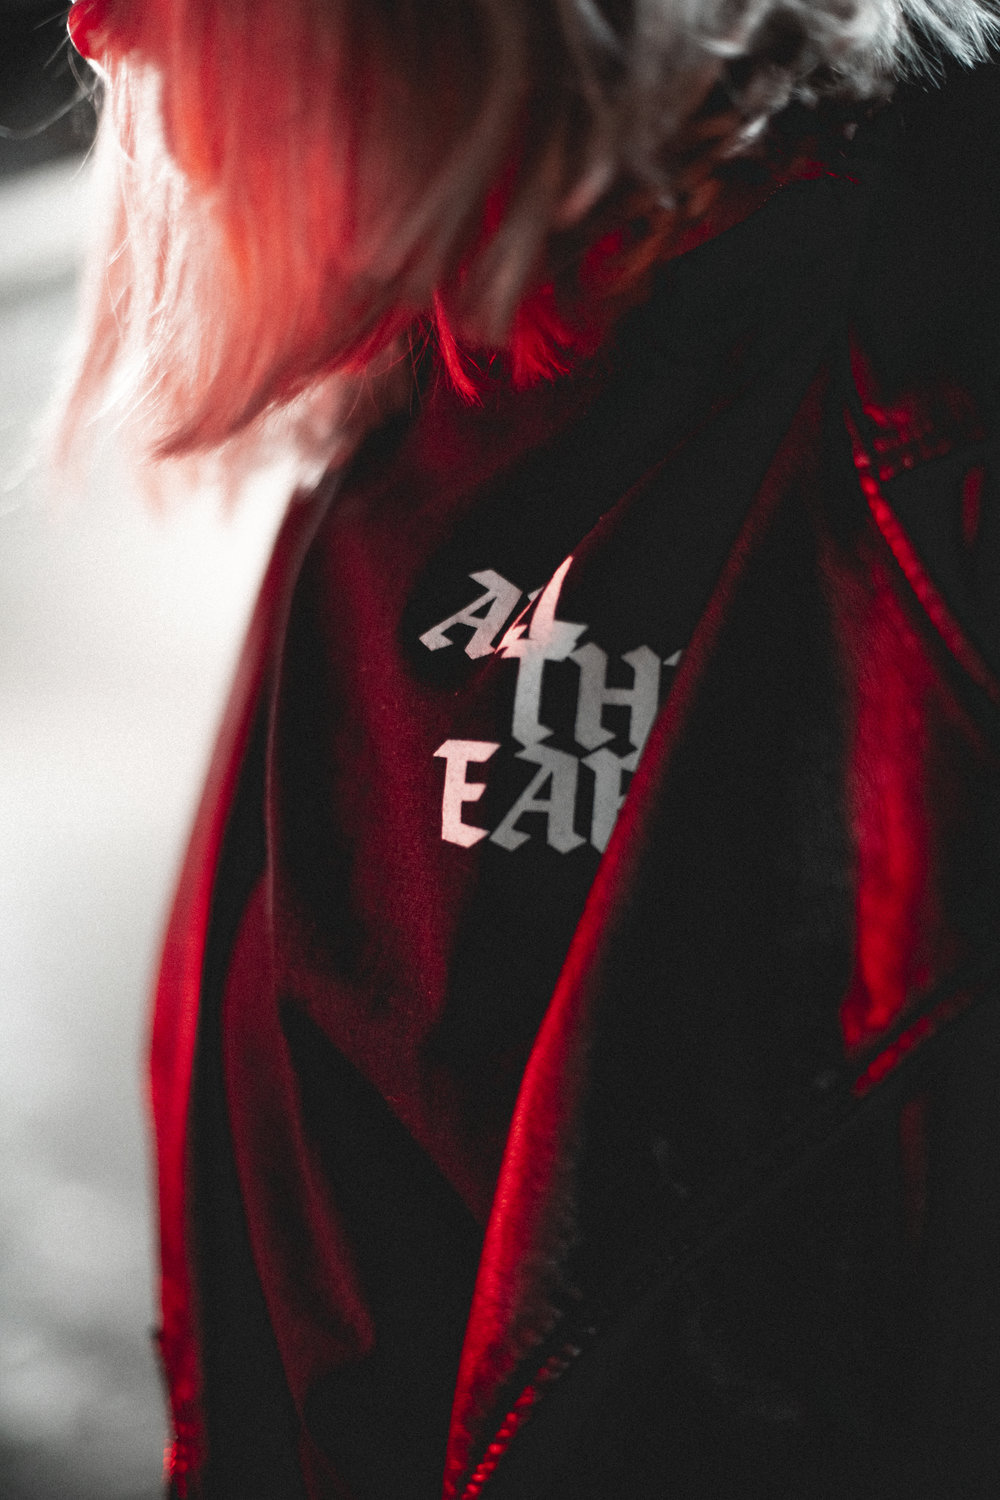 All The Earth - Clothing Line